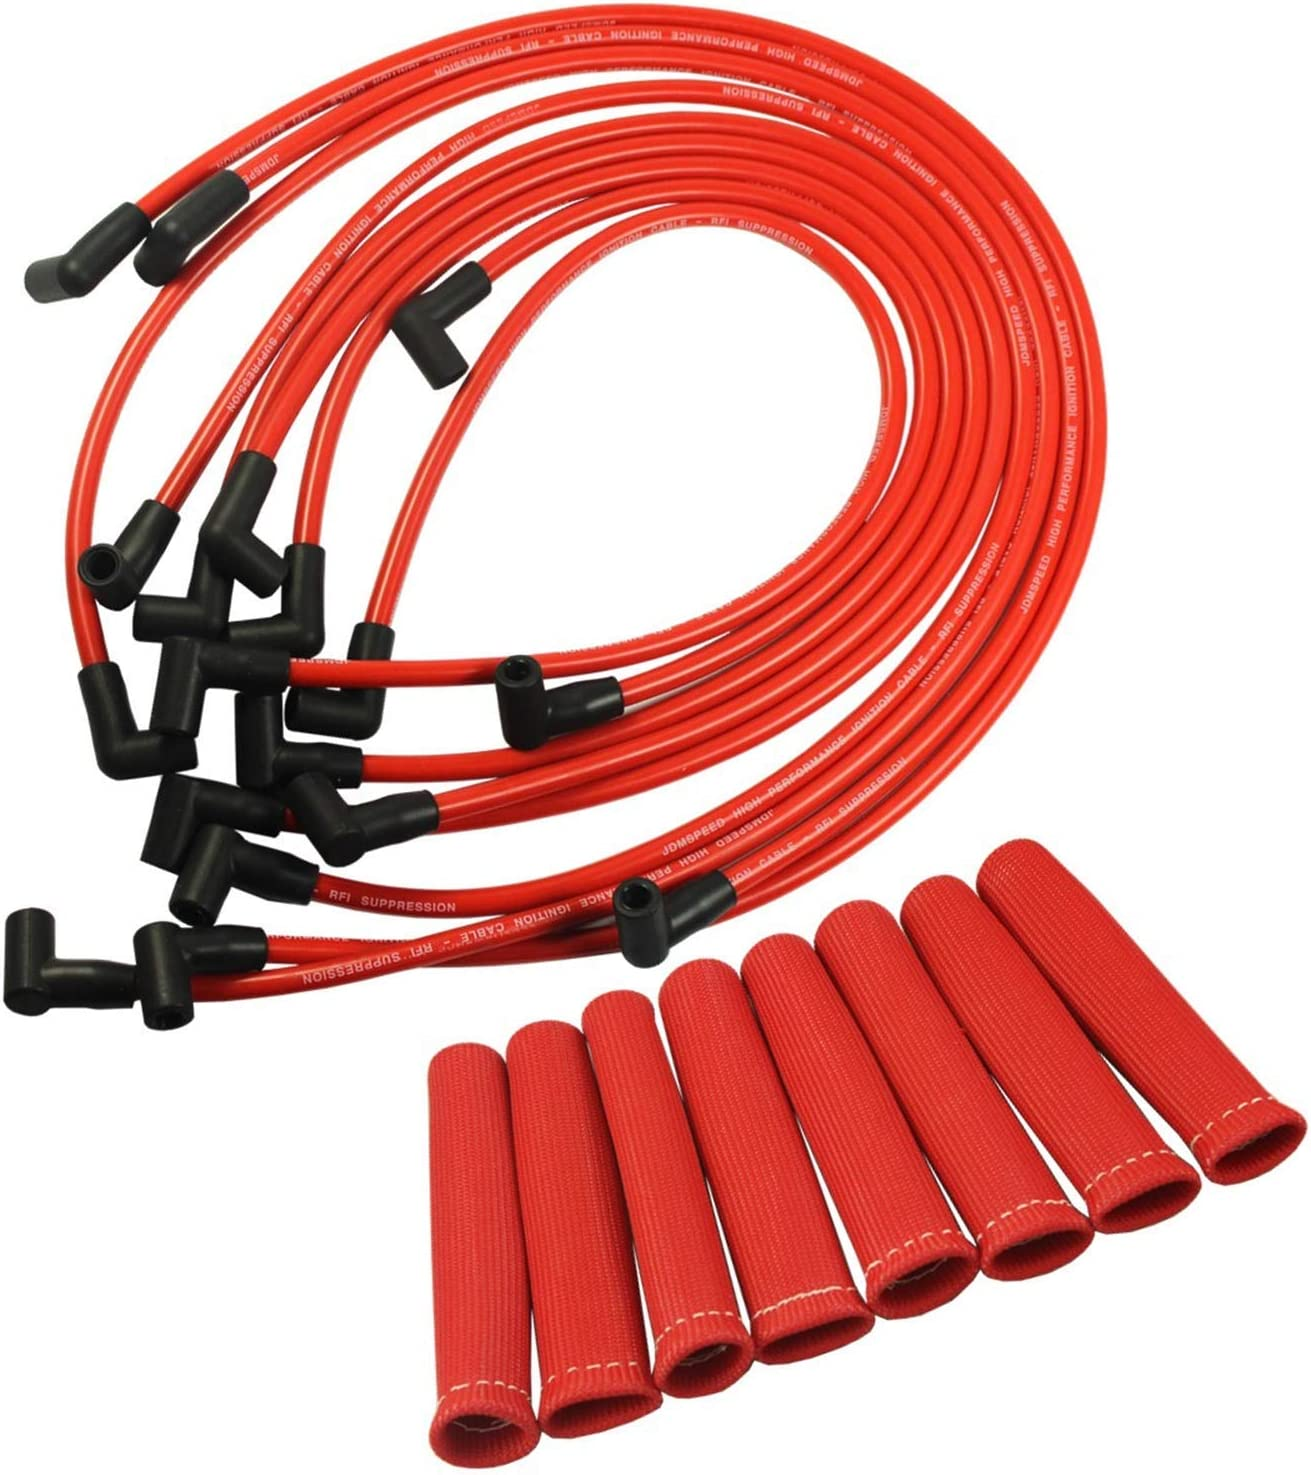 JDMSPEED New Plug Wires Set Directly managed store unisex Bundle Shield Protec Boots with Heat